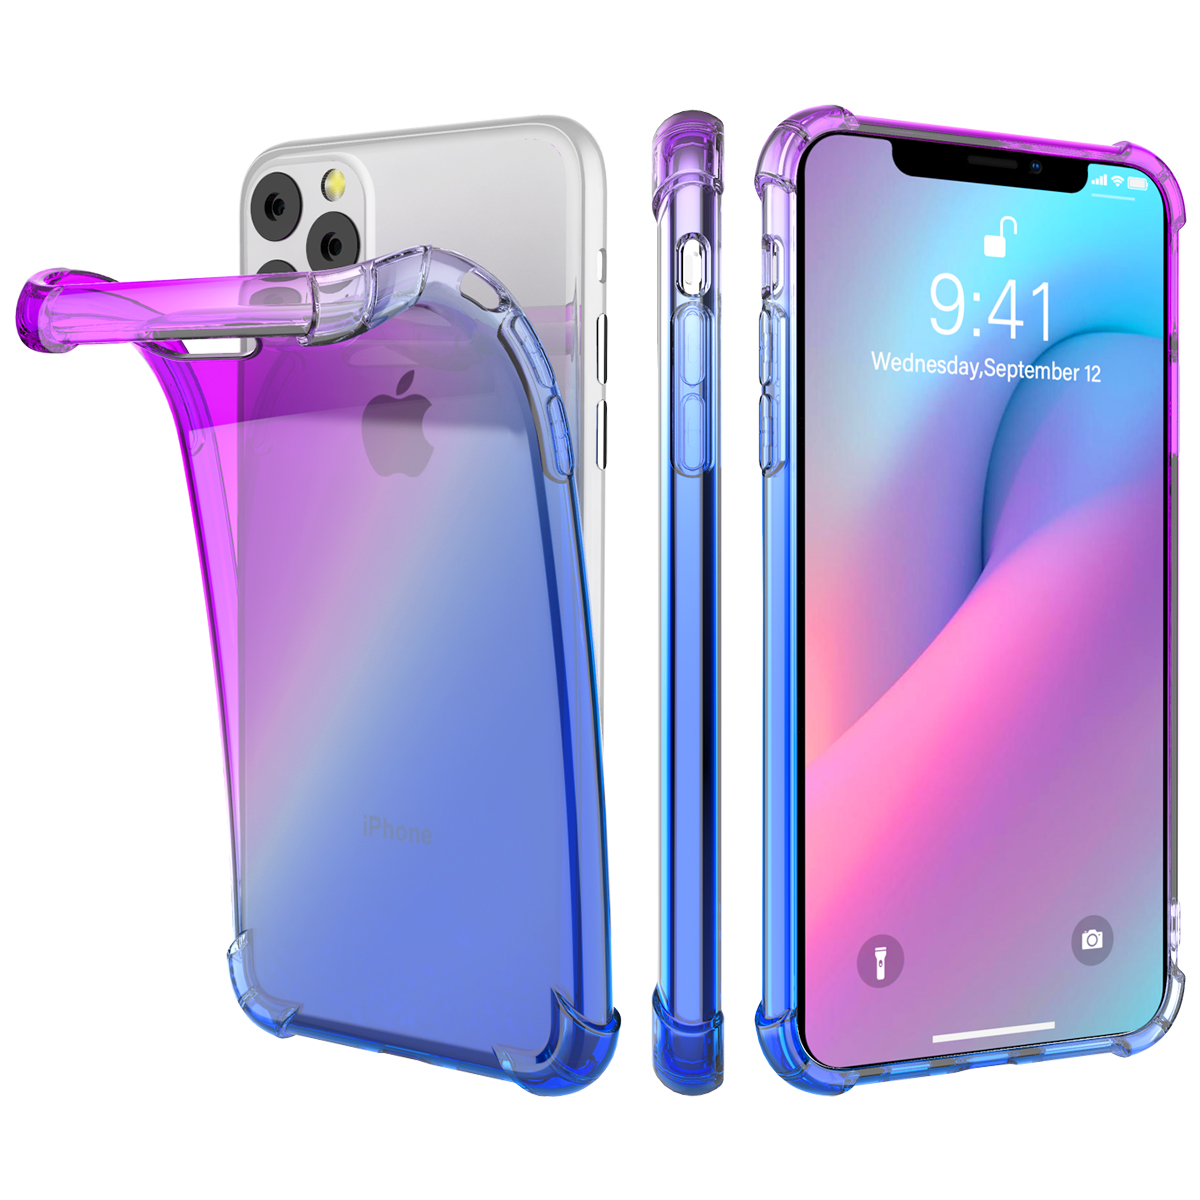 Gradient Soft TPU Case for iPhone 11/11 Pro/11 Pro Max 15